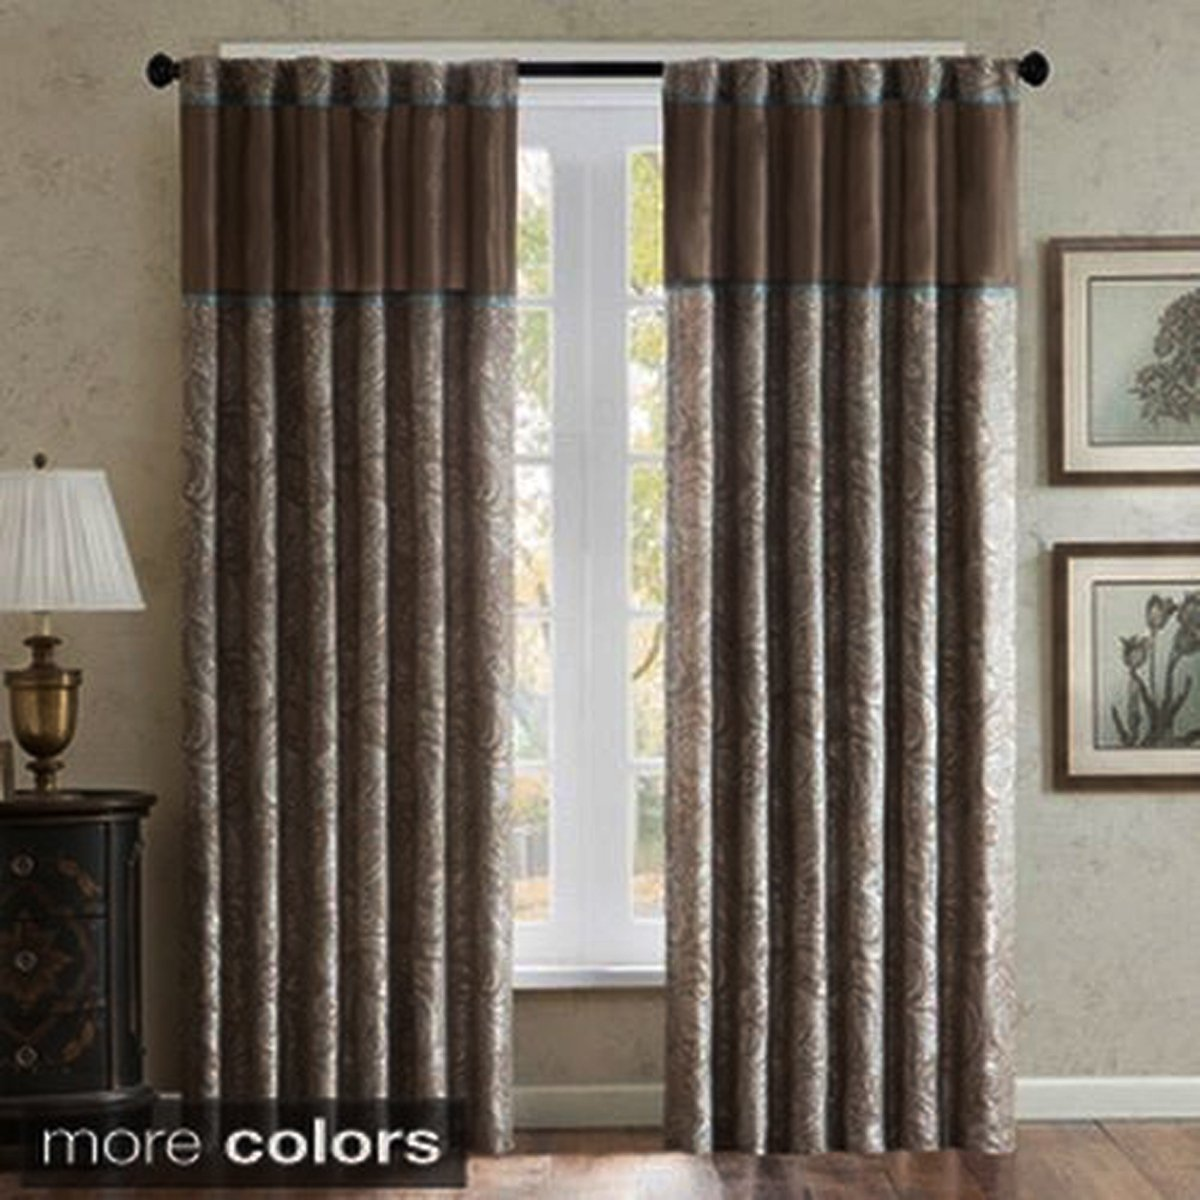 Madison Park Aubrey Rod Pocket Curtain Panel Pair, Brown